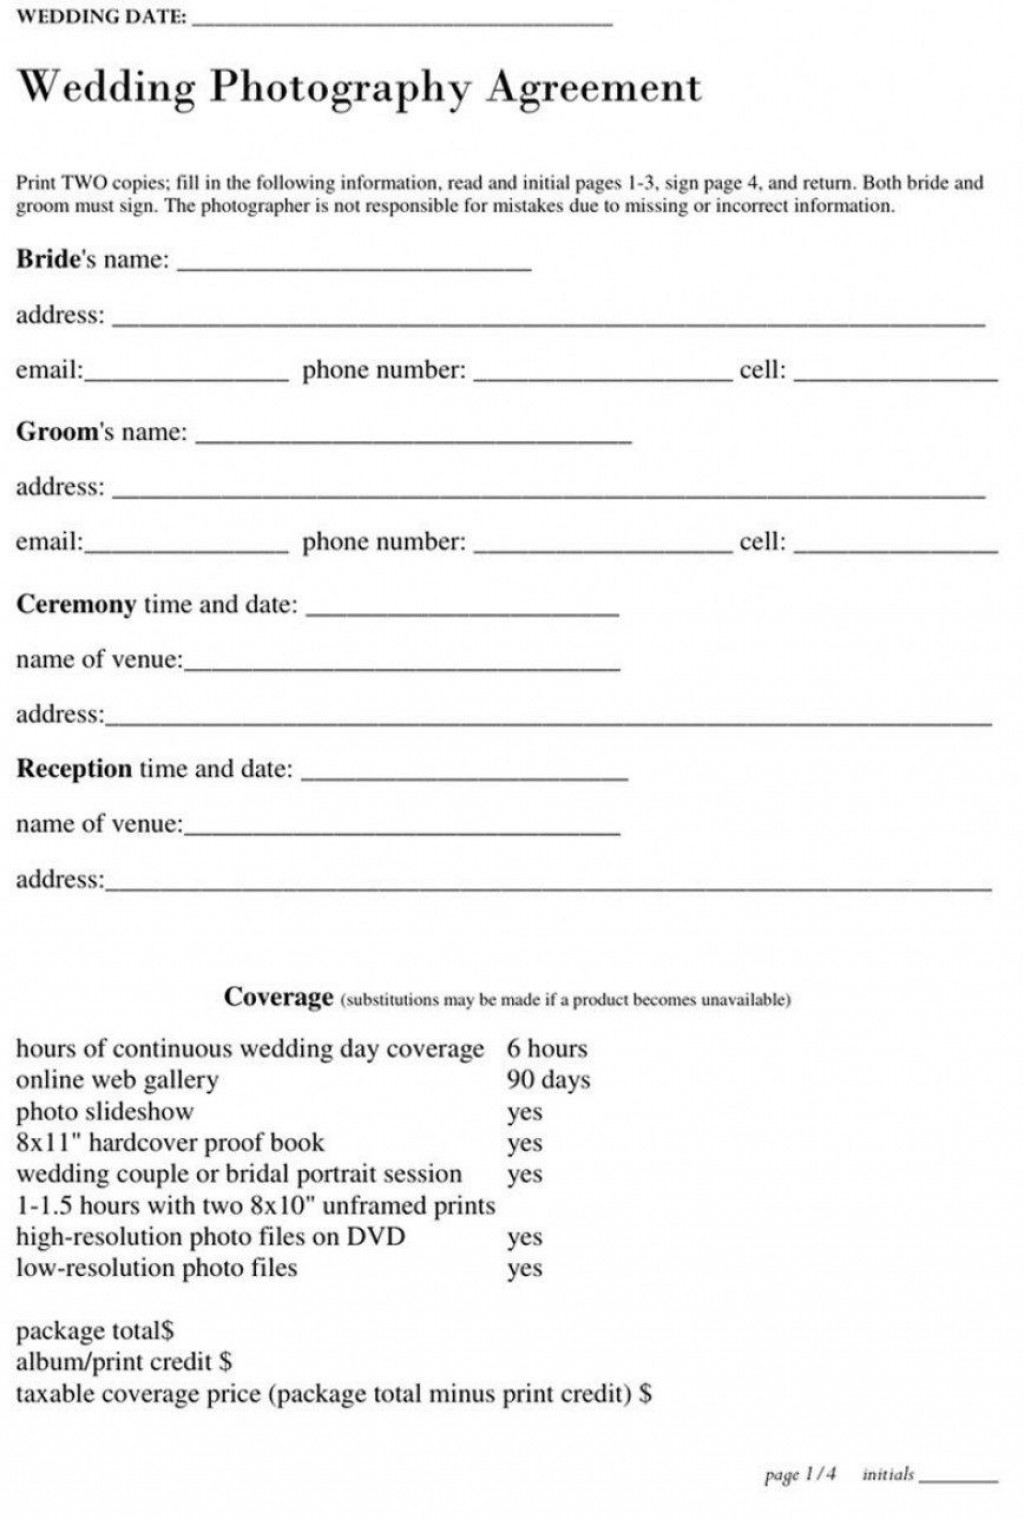 006 Best Wedding Photographer Contract Template Free Image  Simple Photography WordLarge